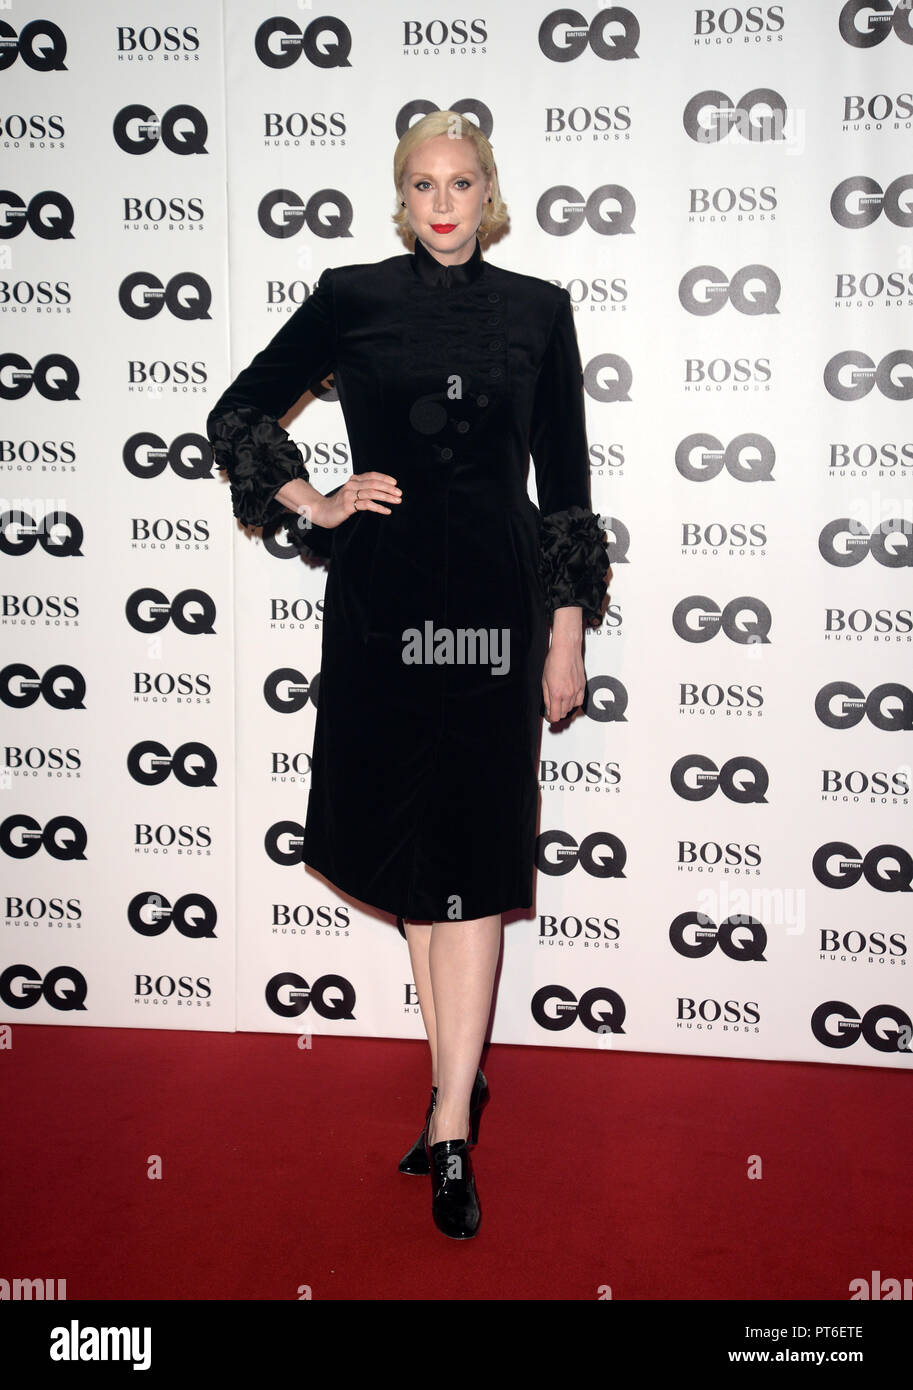 GQ Men Of The Year Awards at The Tate Modern  Featuring: Gwendoline Christie Where: London, United Kingdom When: 05 Sep 2018 Credit: Tony Oudot/WENN - Stock Image